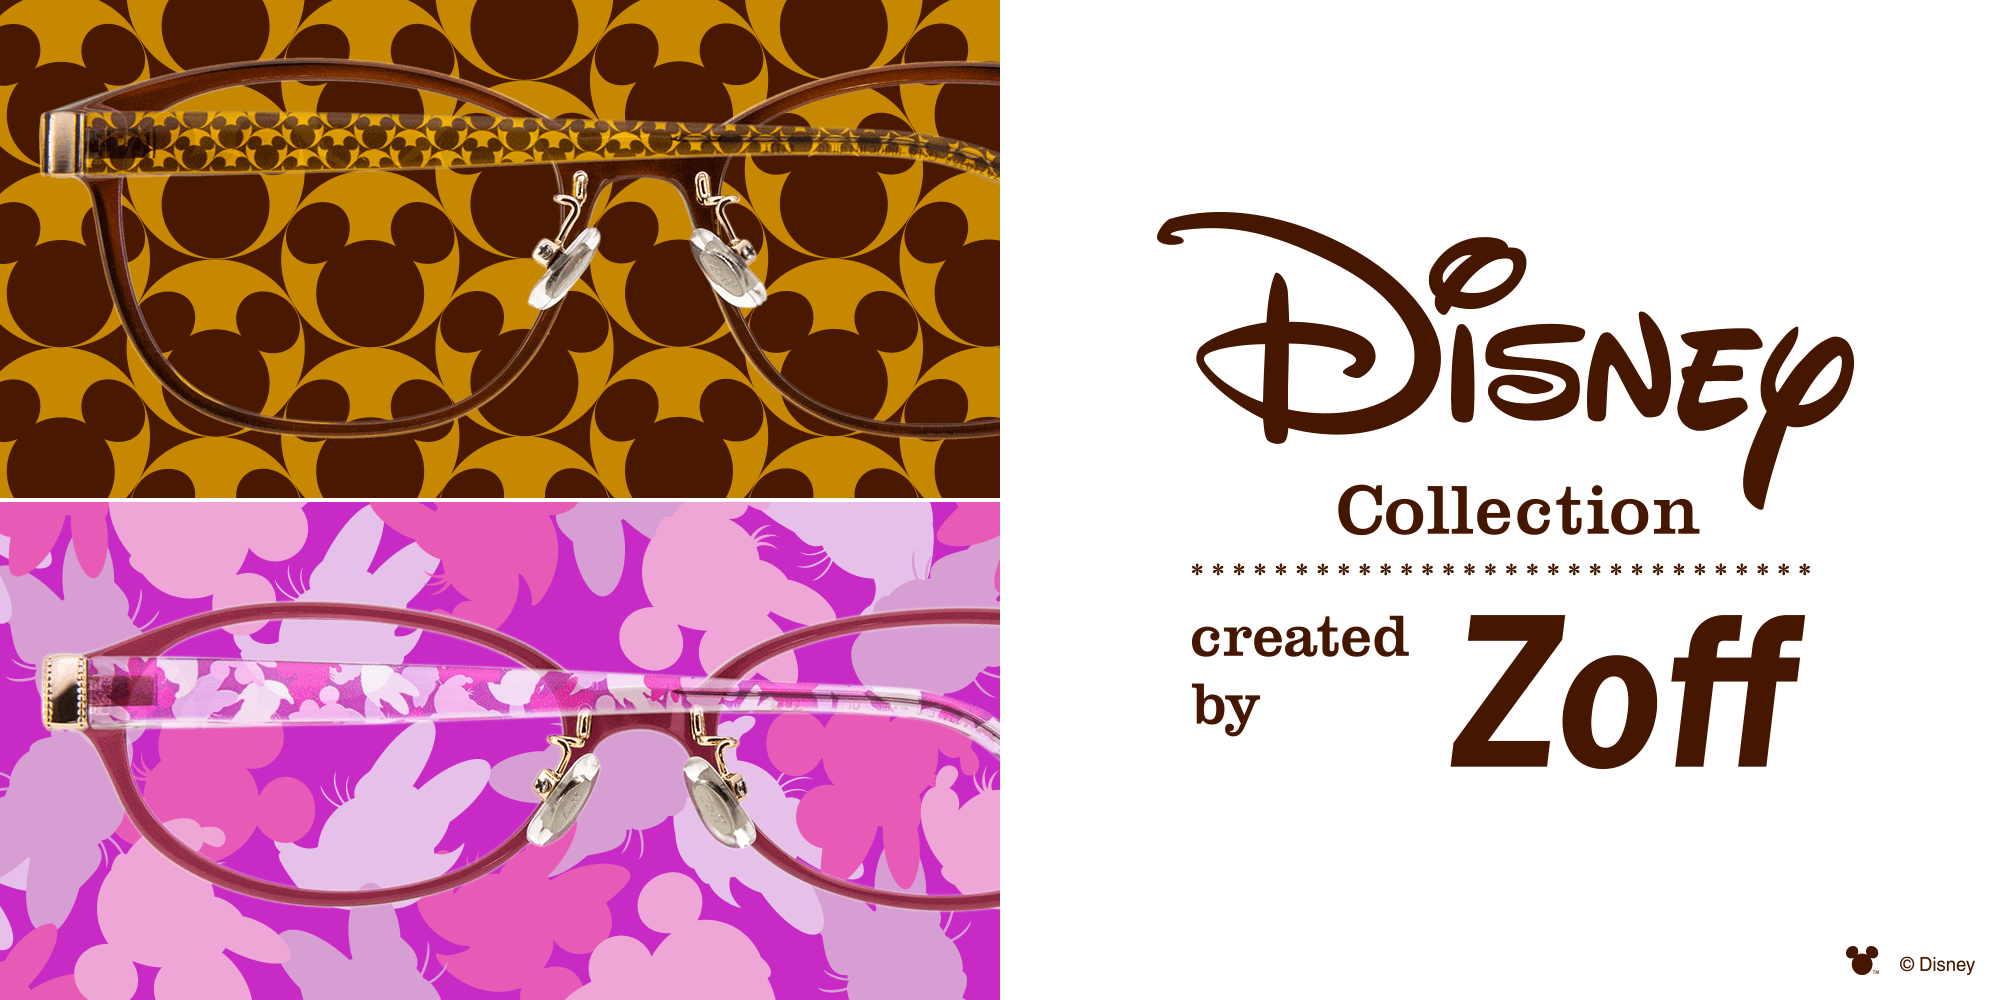 Disney Collection created by Zoff